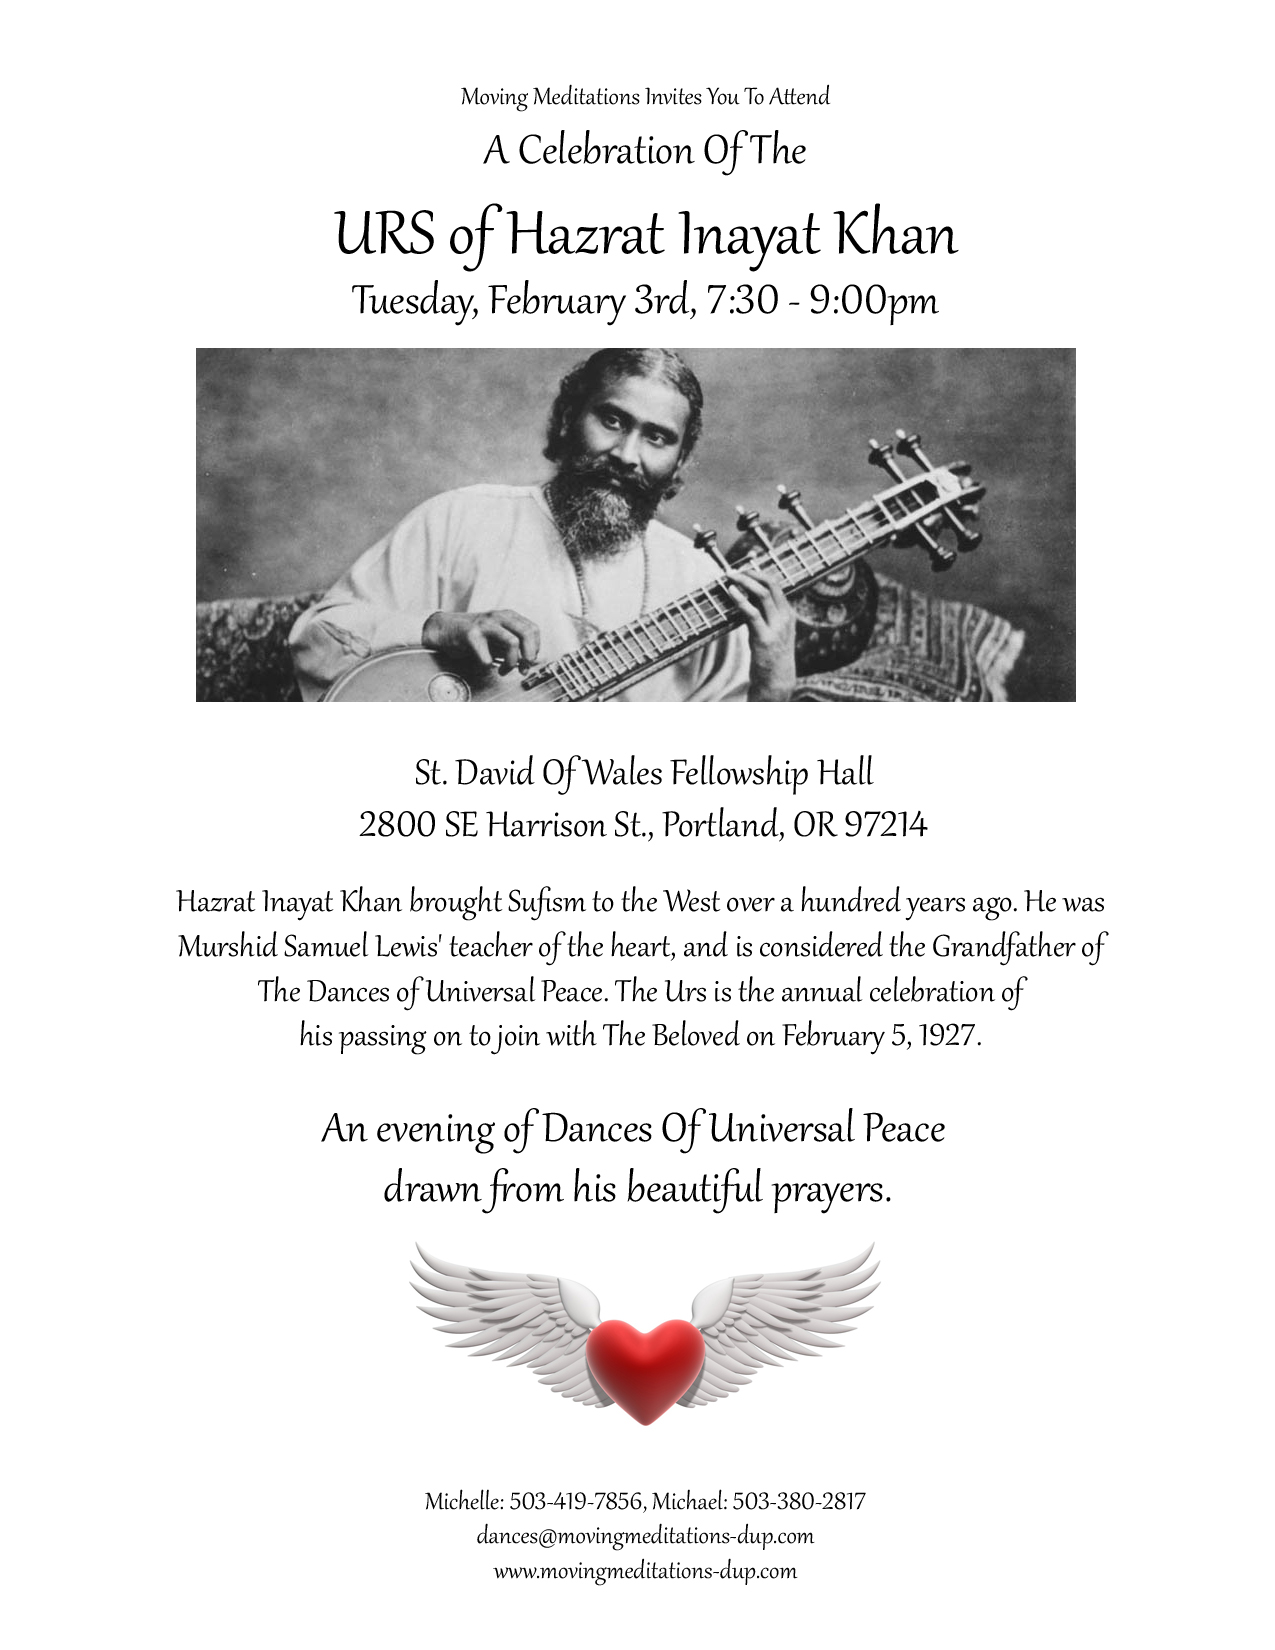 URS of Inayat Khan 2015 - 72dpi